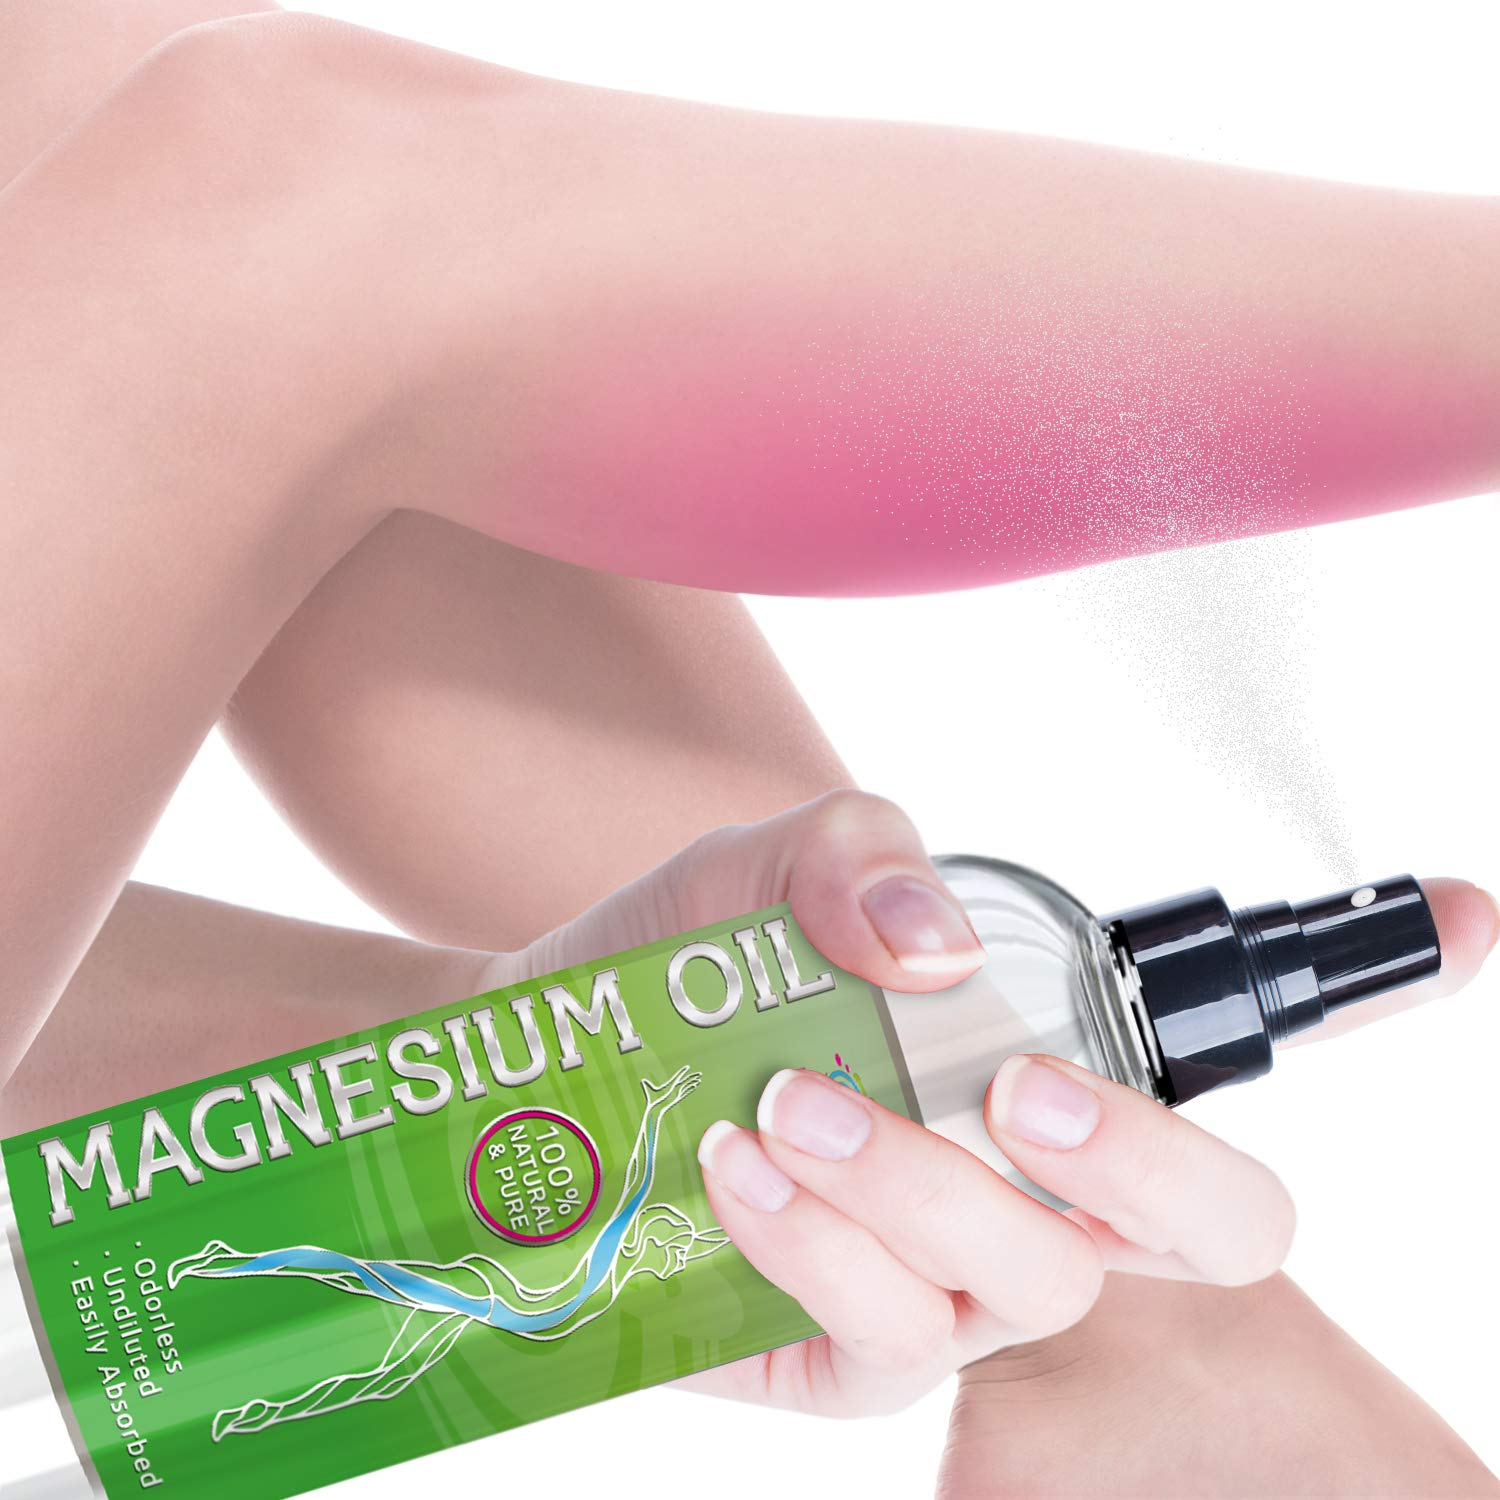 Pure Magnesium Oil Spray - Maximum Strength & Purity So It Works Faster, Lasts Longer & Won't Irritate - Sourced from Ancient USA Minerals Well - for Sleep Anxiety Migraine Muscle Pain Restless Legs by Pure Vitality Minerals